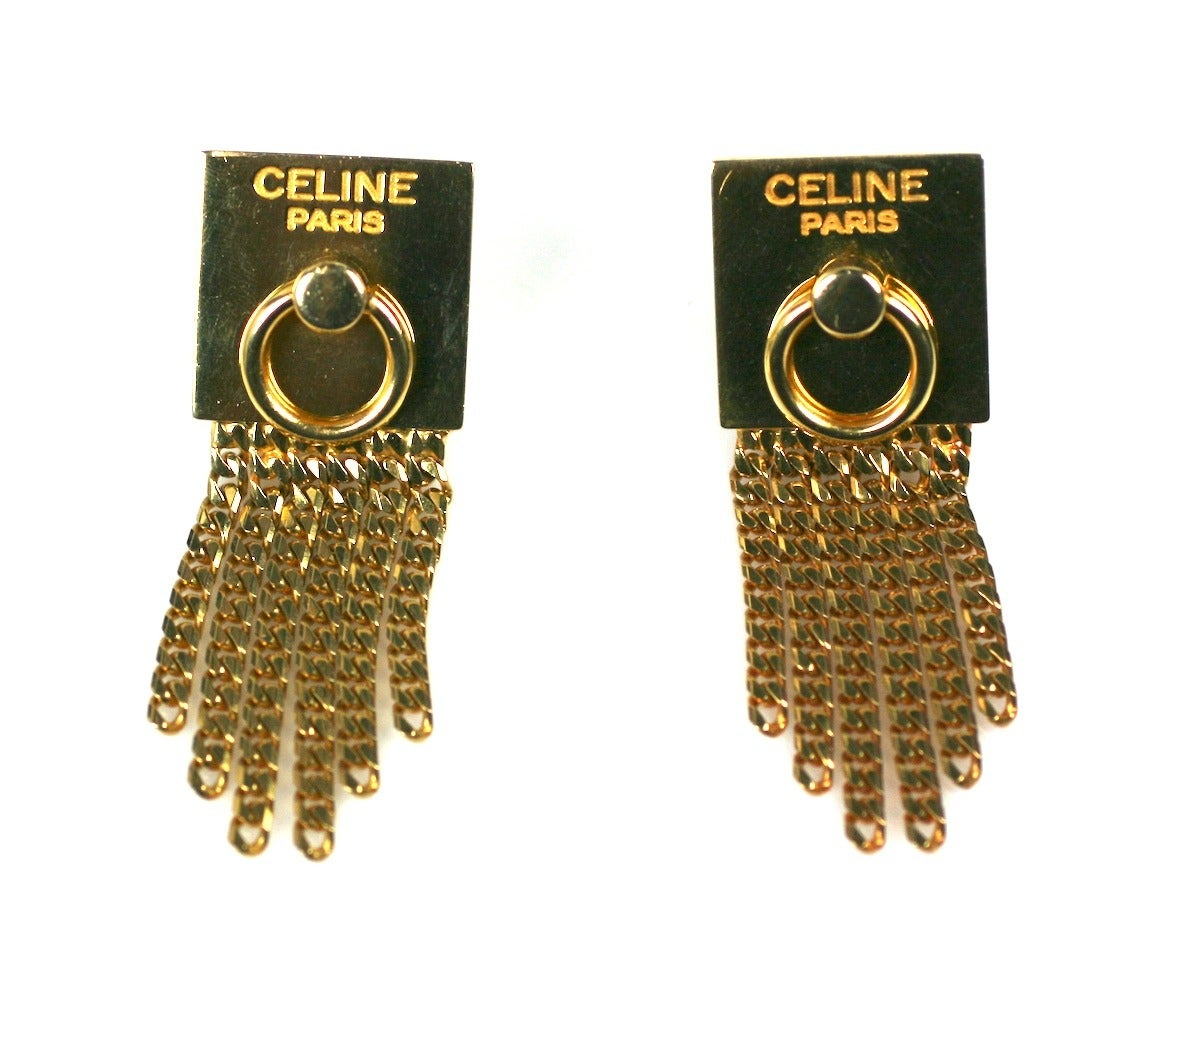 Celine Gold Chain Door Knocker Earrings In Excellent Condition For Sale In Riverdale, NY